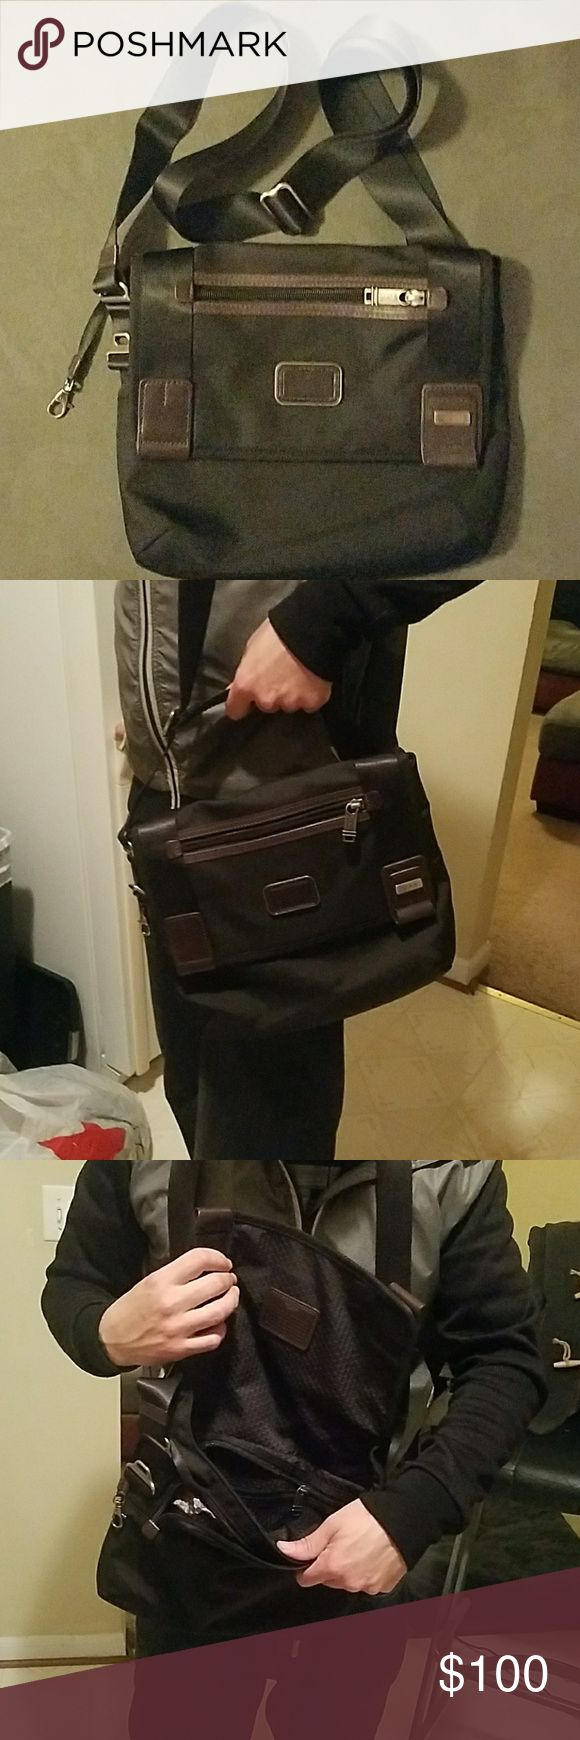 Tumi Small Laptop Tablet Black Shoulder Bag Authentic Tumi Bag Black with Brown leather Adjustable over shoulder laptop / Organizer Bag Magnetic closure along with zipper closure Size 12 inch x 10 inch Strap measures 1ft 5 inches adjustable length. Tumi Bags